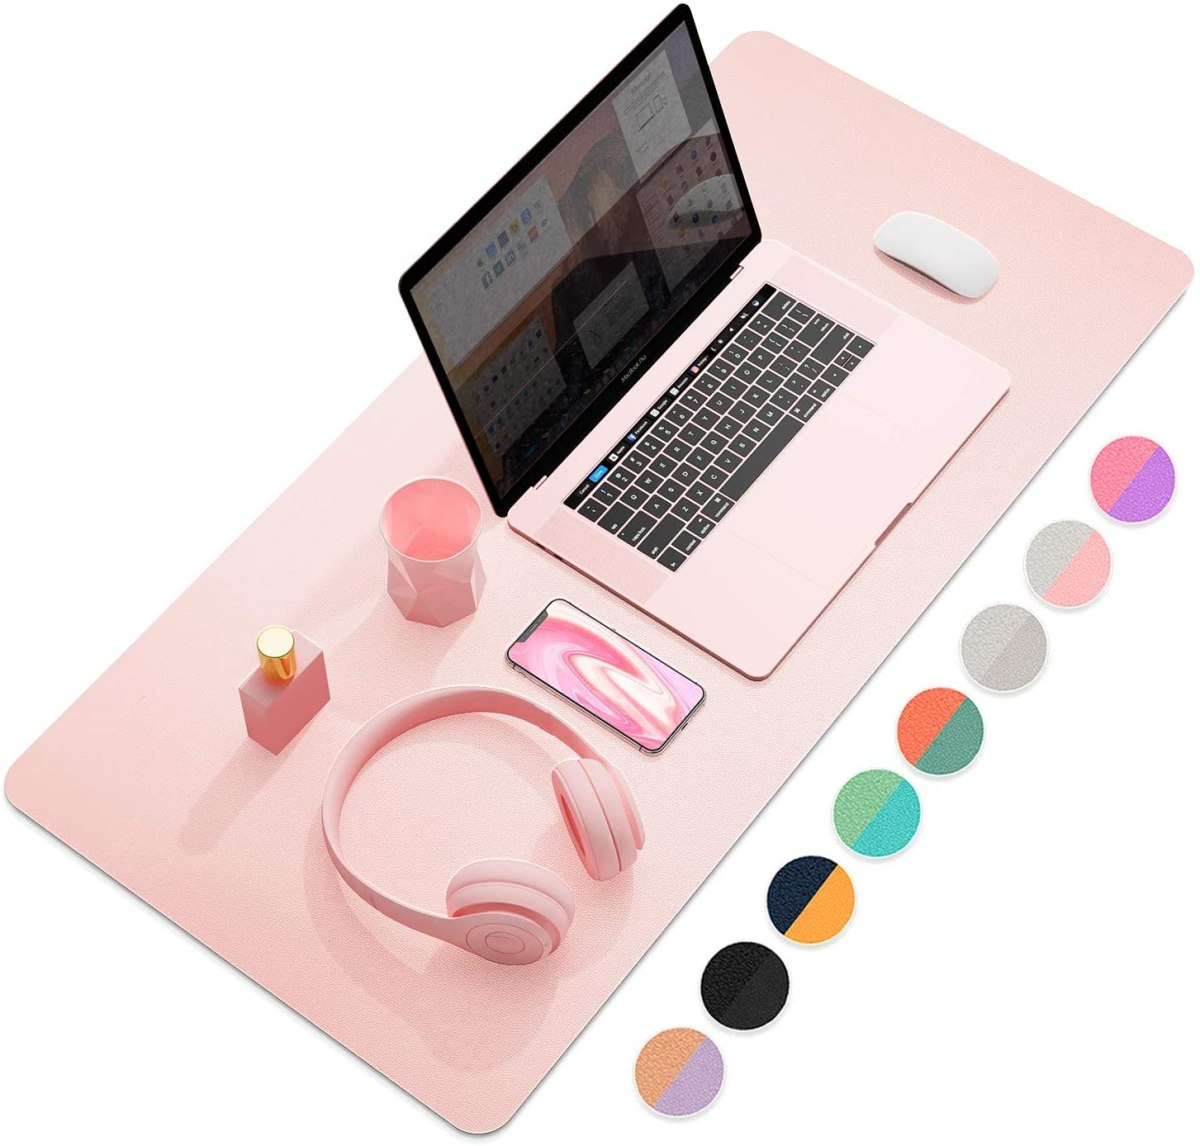 Do you need a desk pad to set up a productive workspace at home